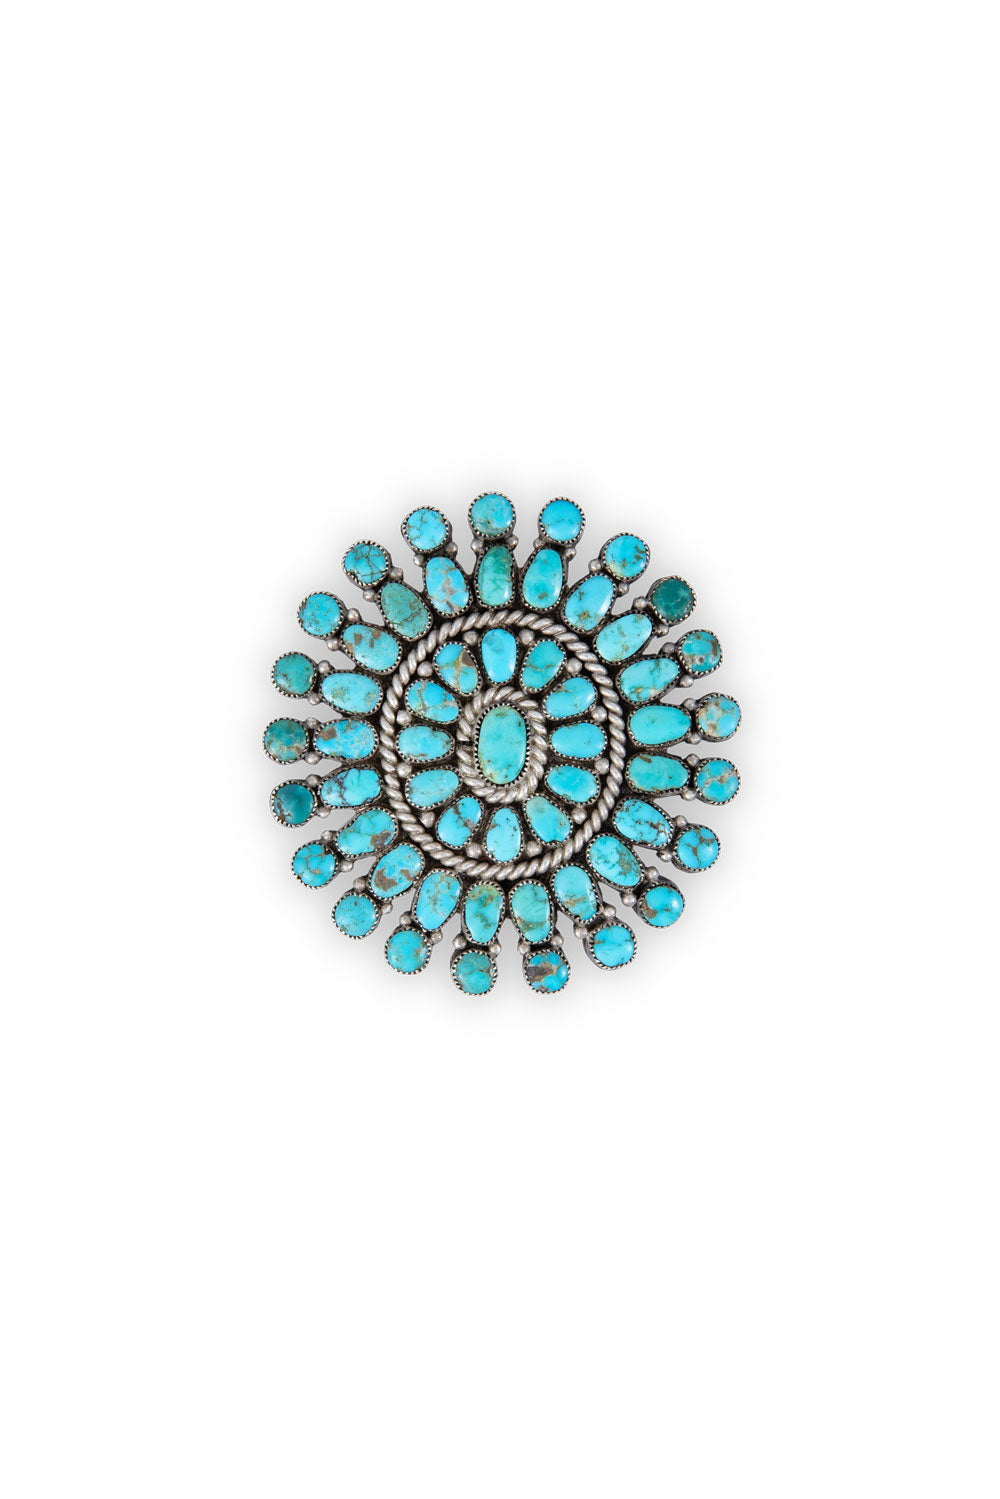 Pin, Cluster, Turquoise, Vintage, 330